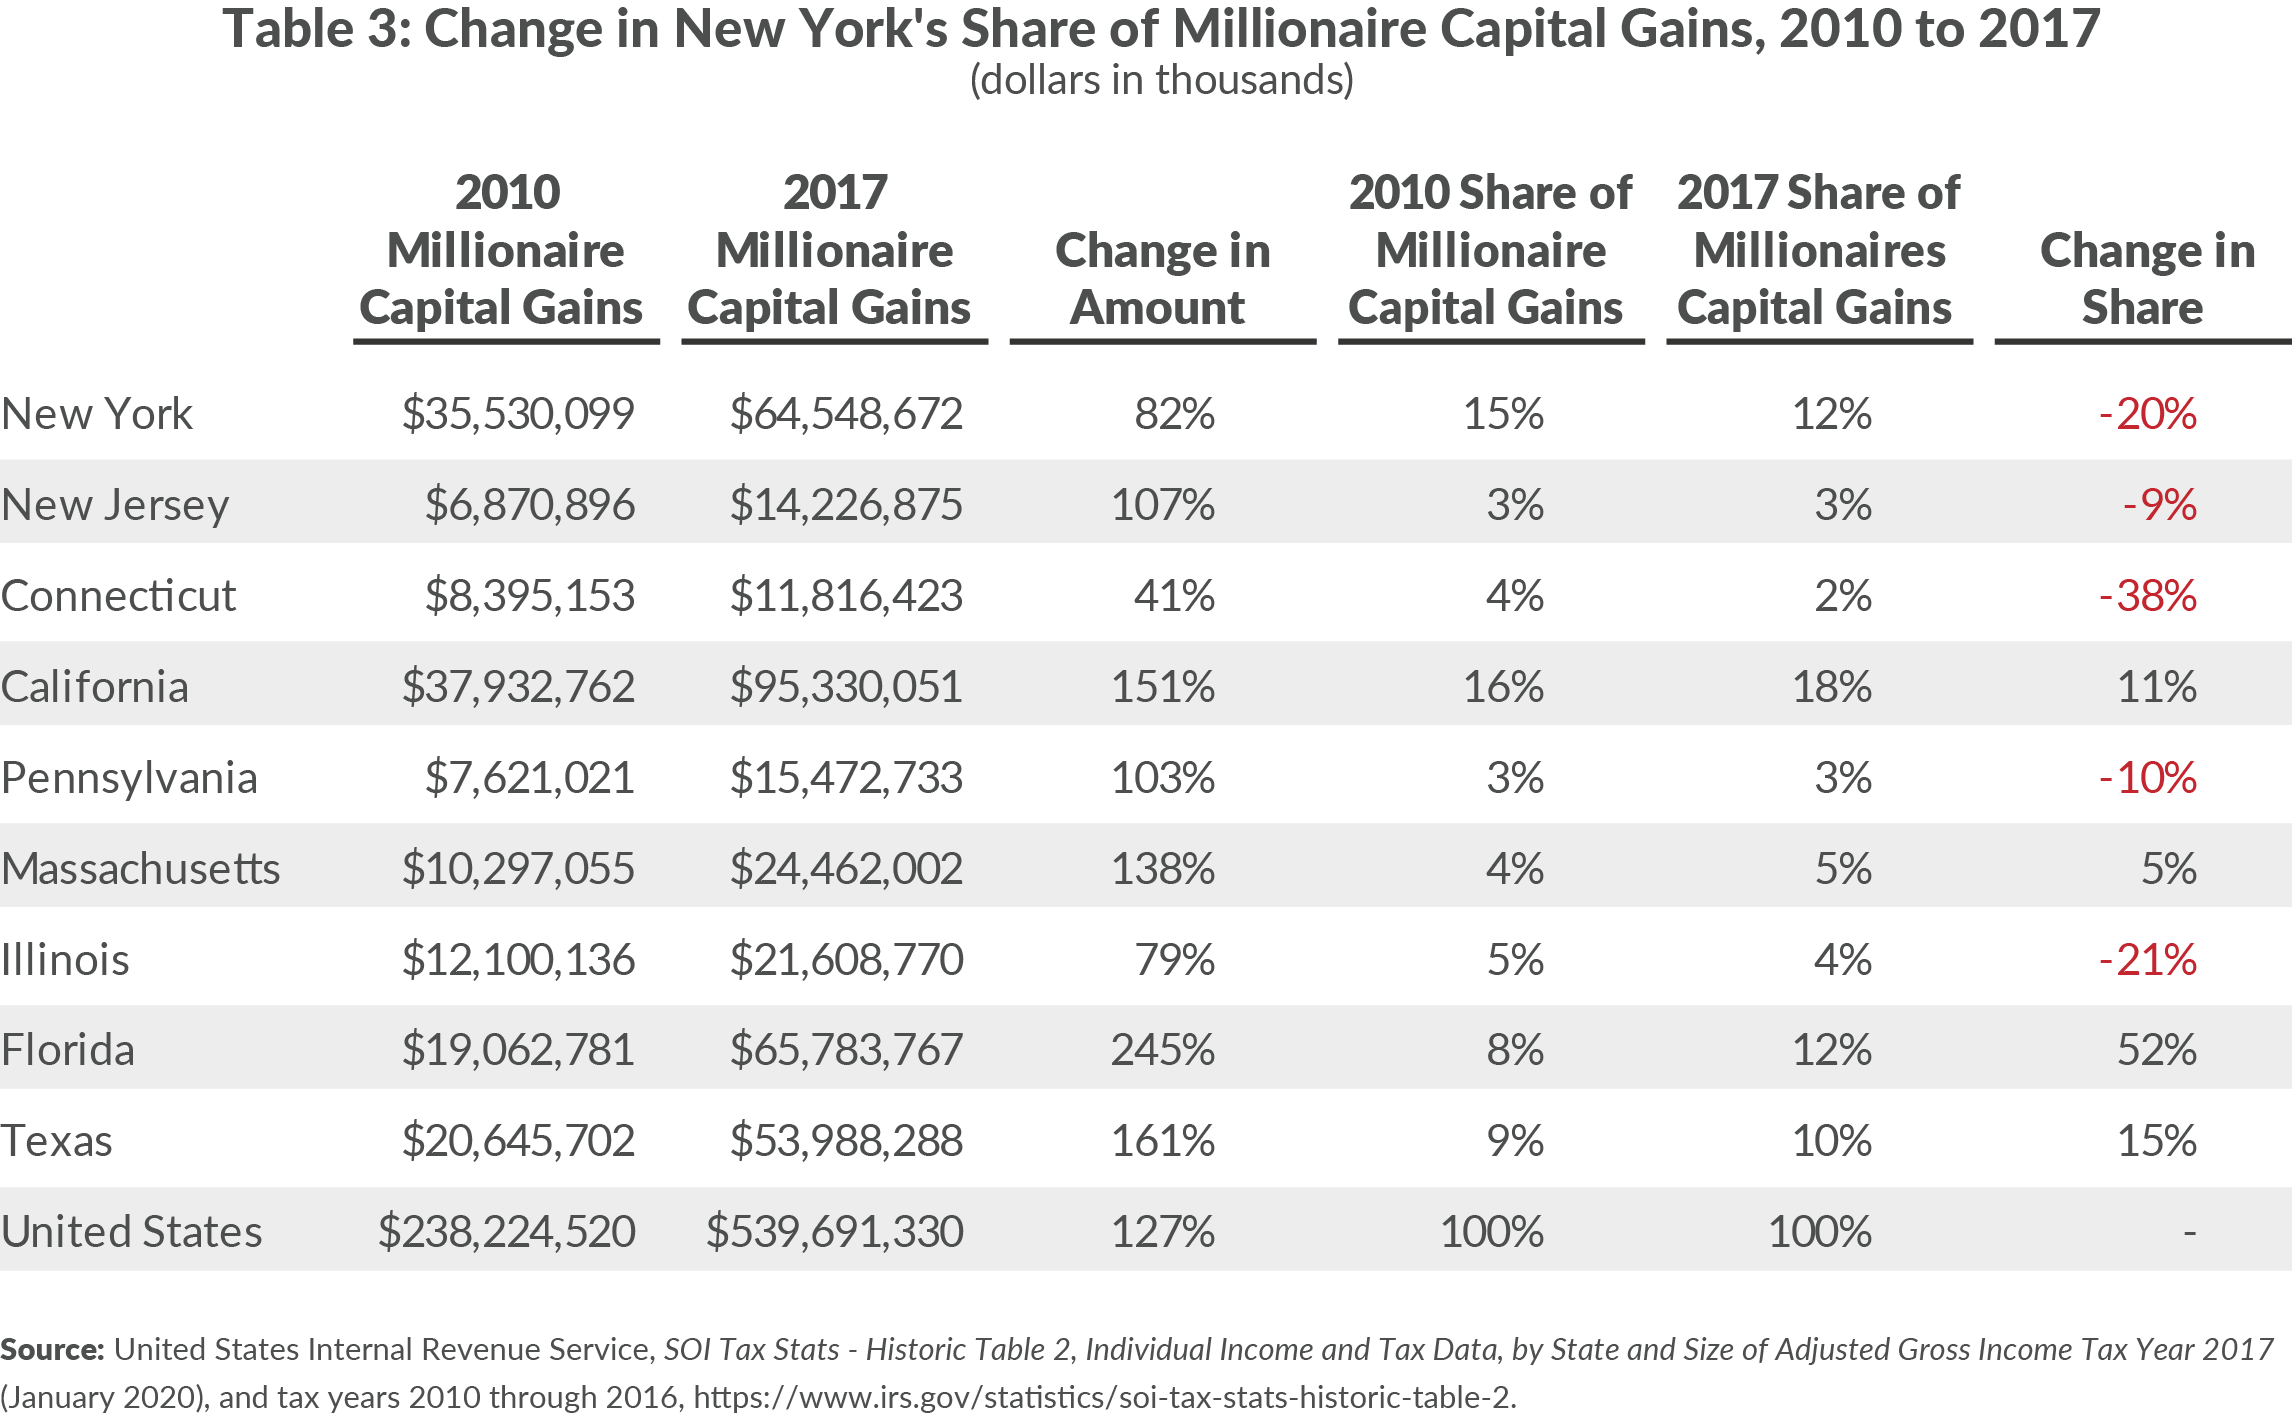 Table 3: Change in New York's Share of Millionaire Capital Gains, 2010 to 2017